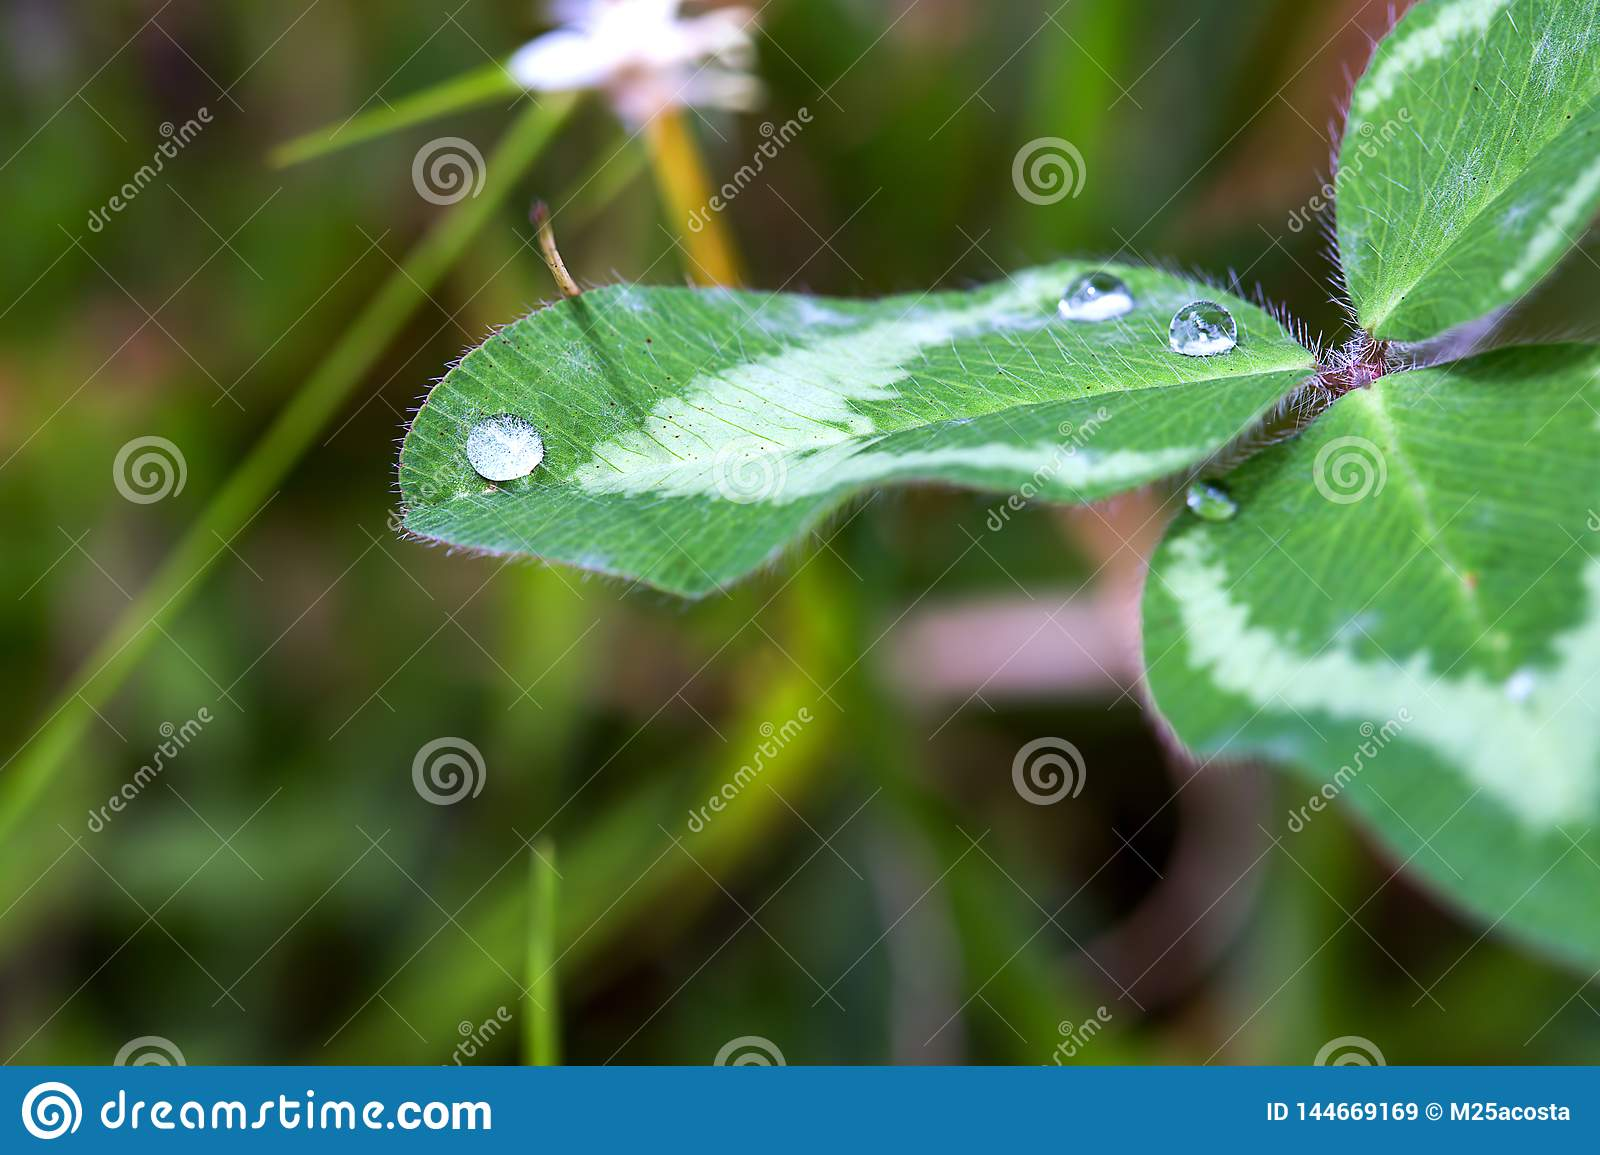 Drops of dew on top of a clover leaf